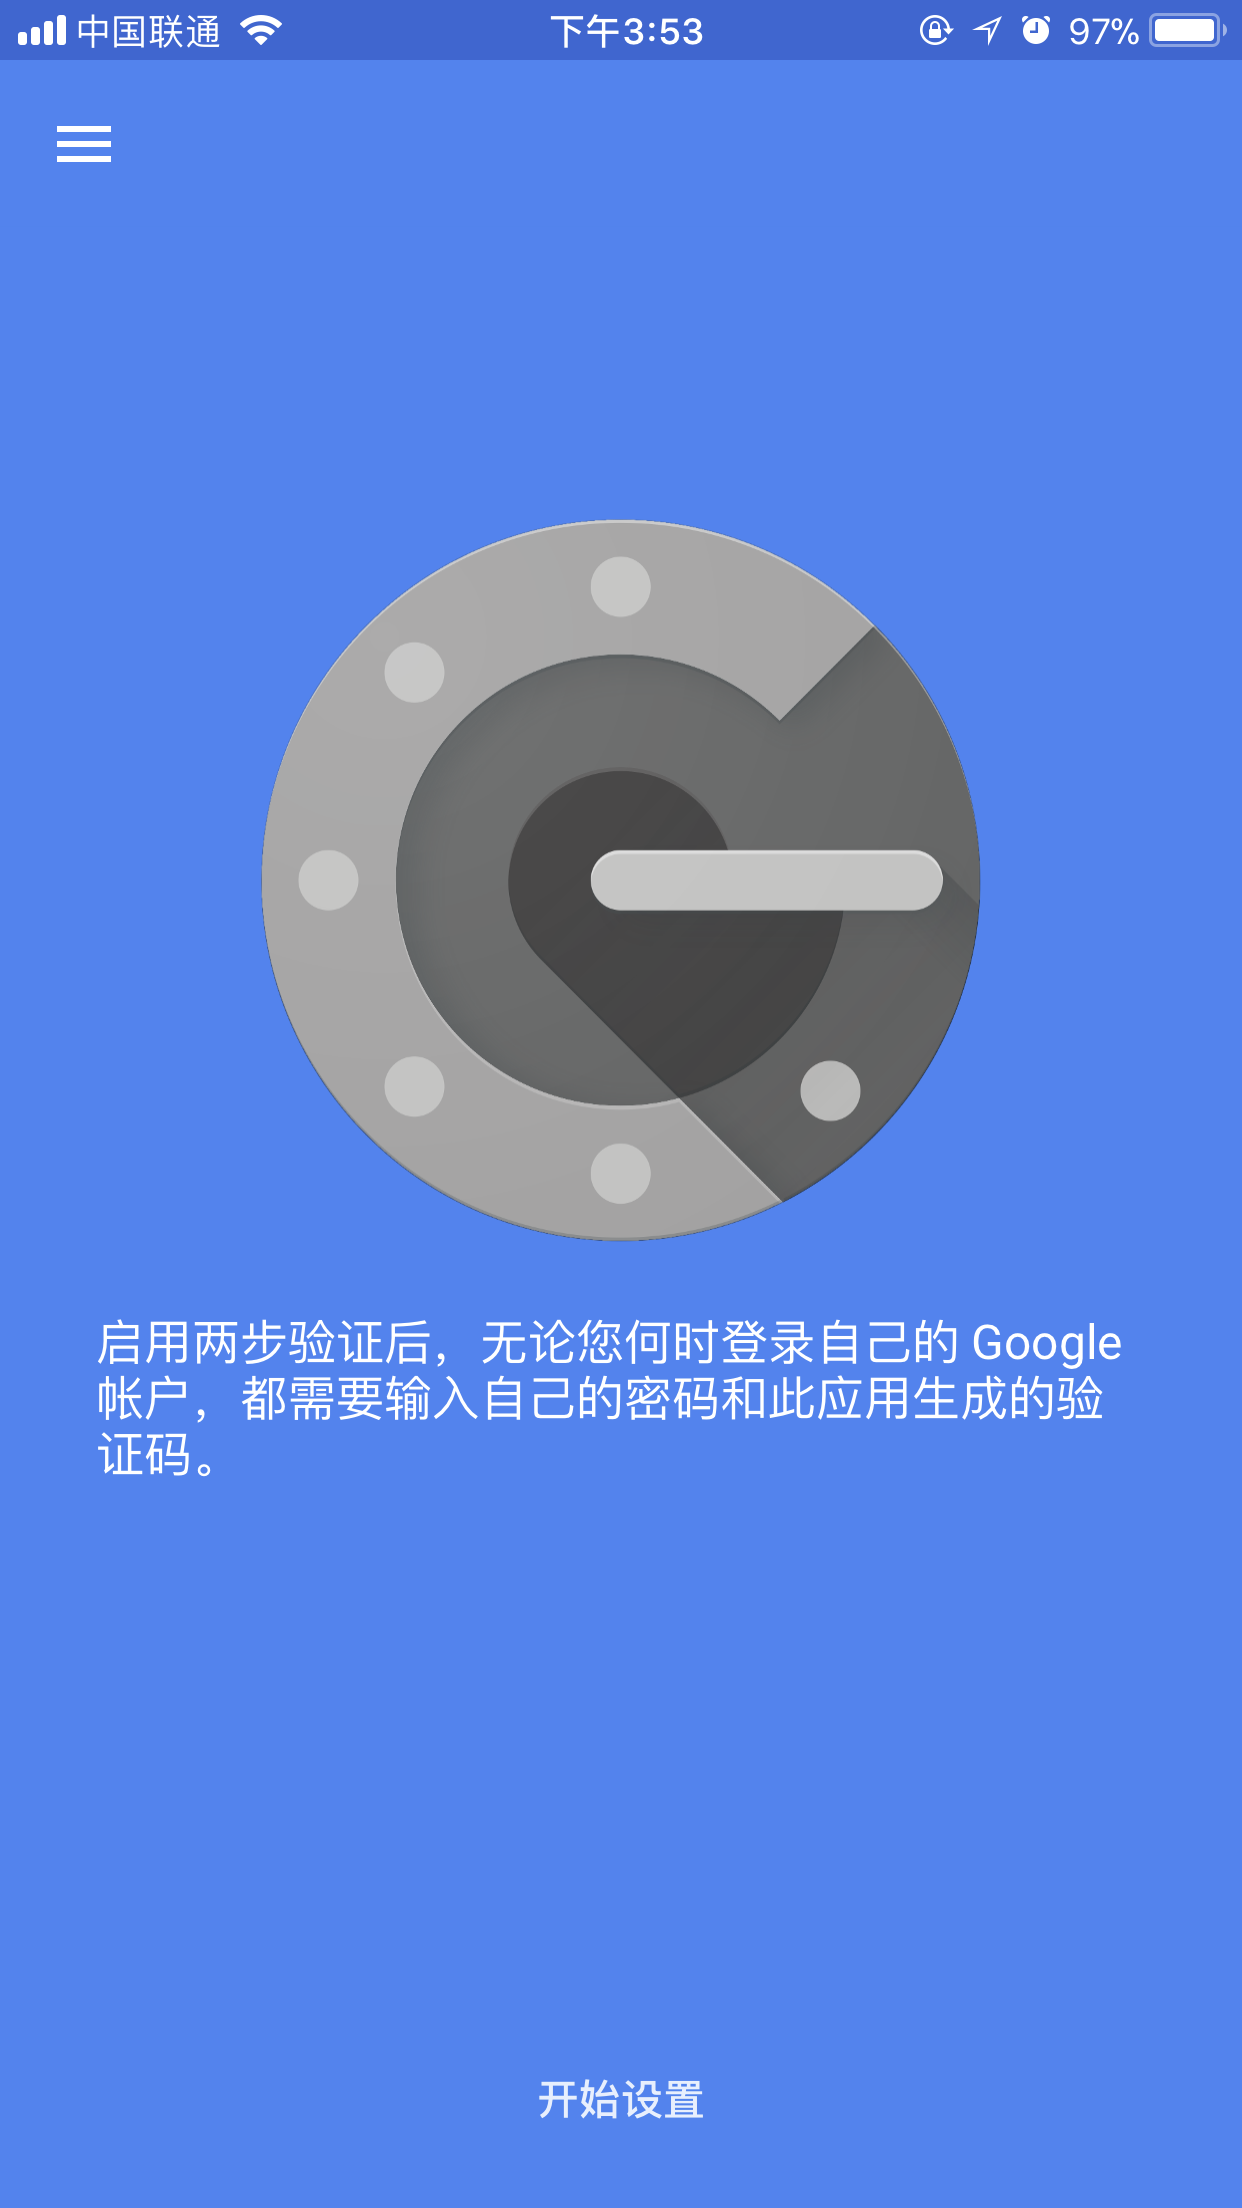 google.com/store/apps/details?id=com.google.android.apps.